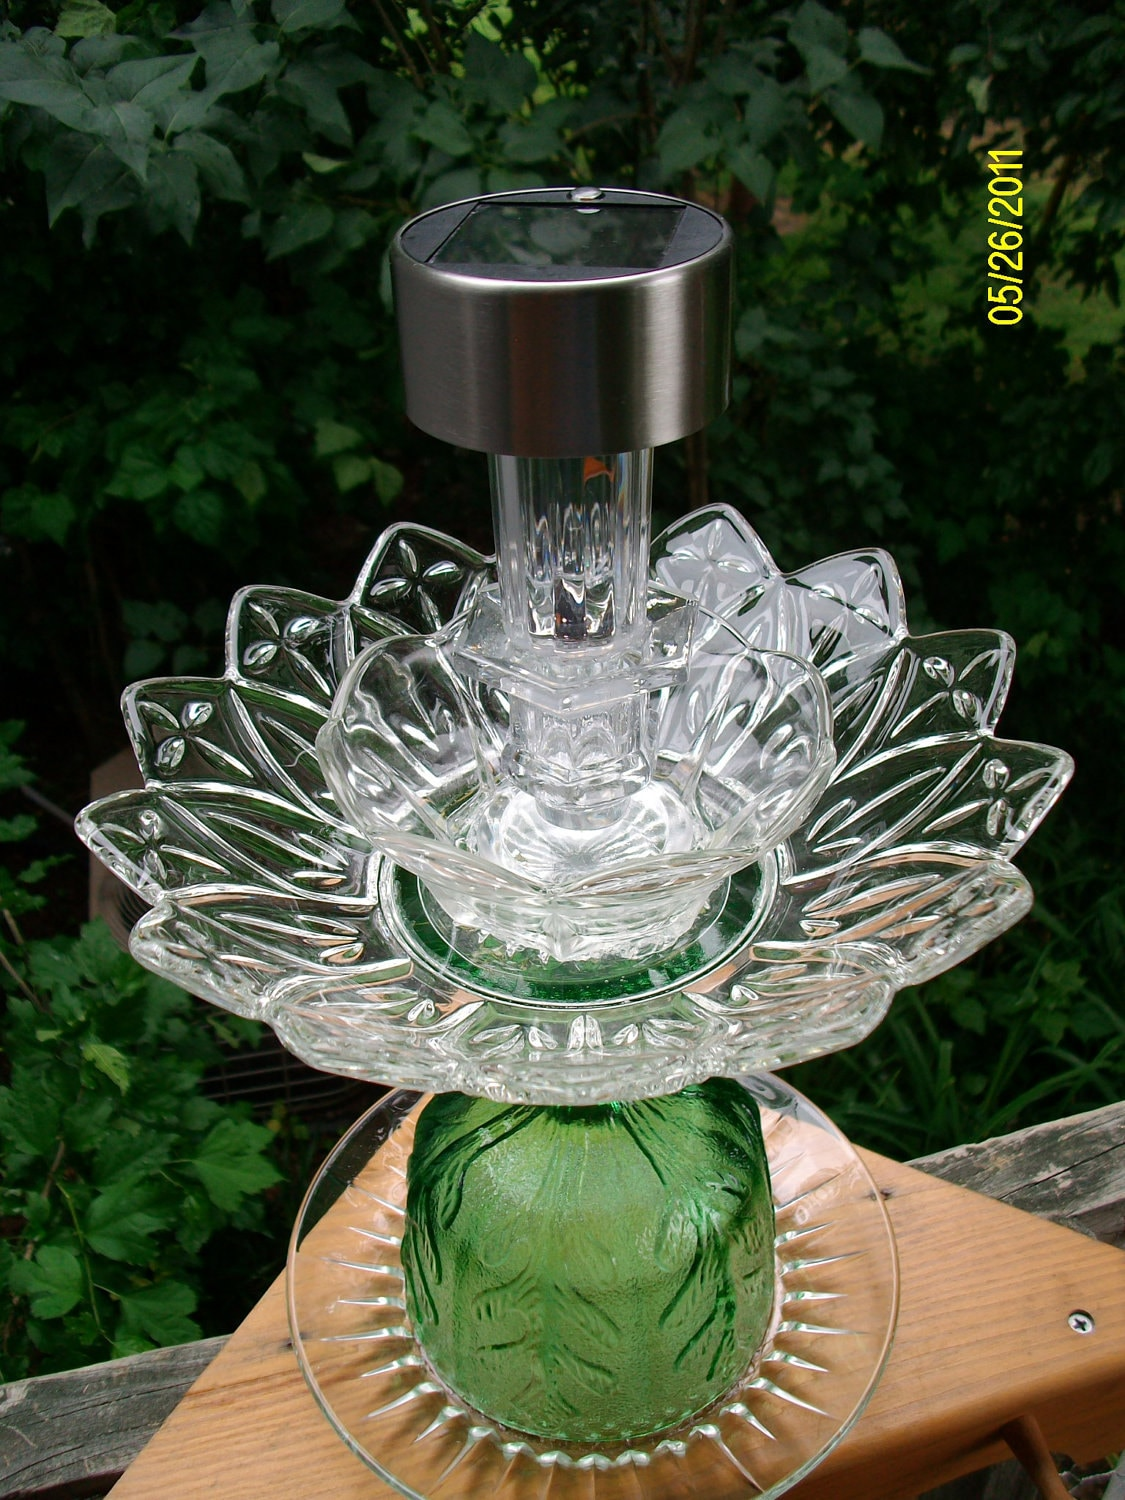 Upcycled recycled glass plate garden solar light for Where to buy solar lights for crafts